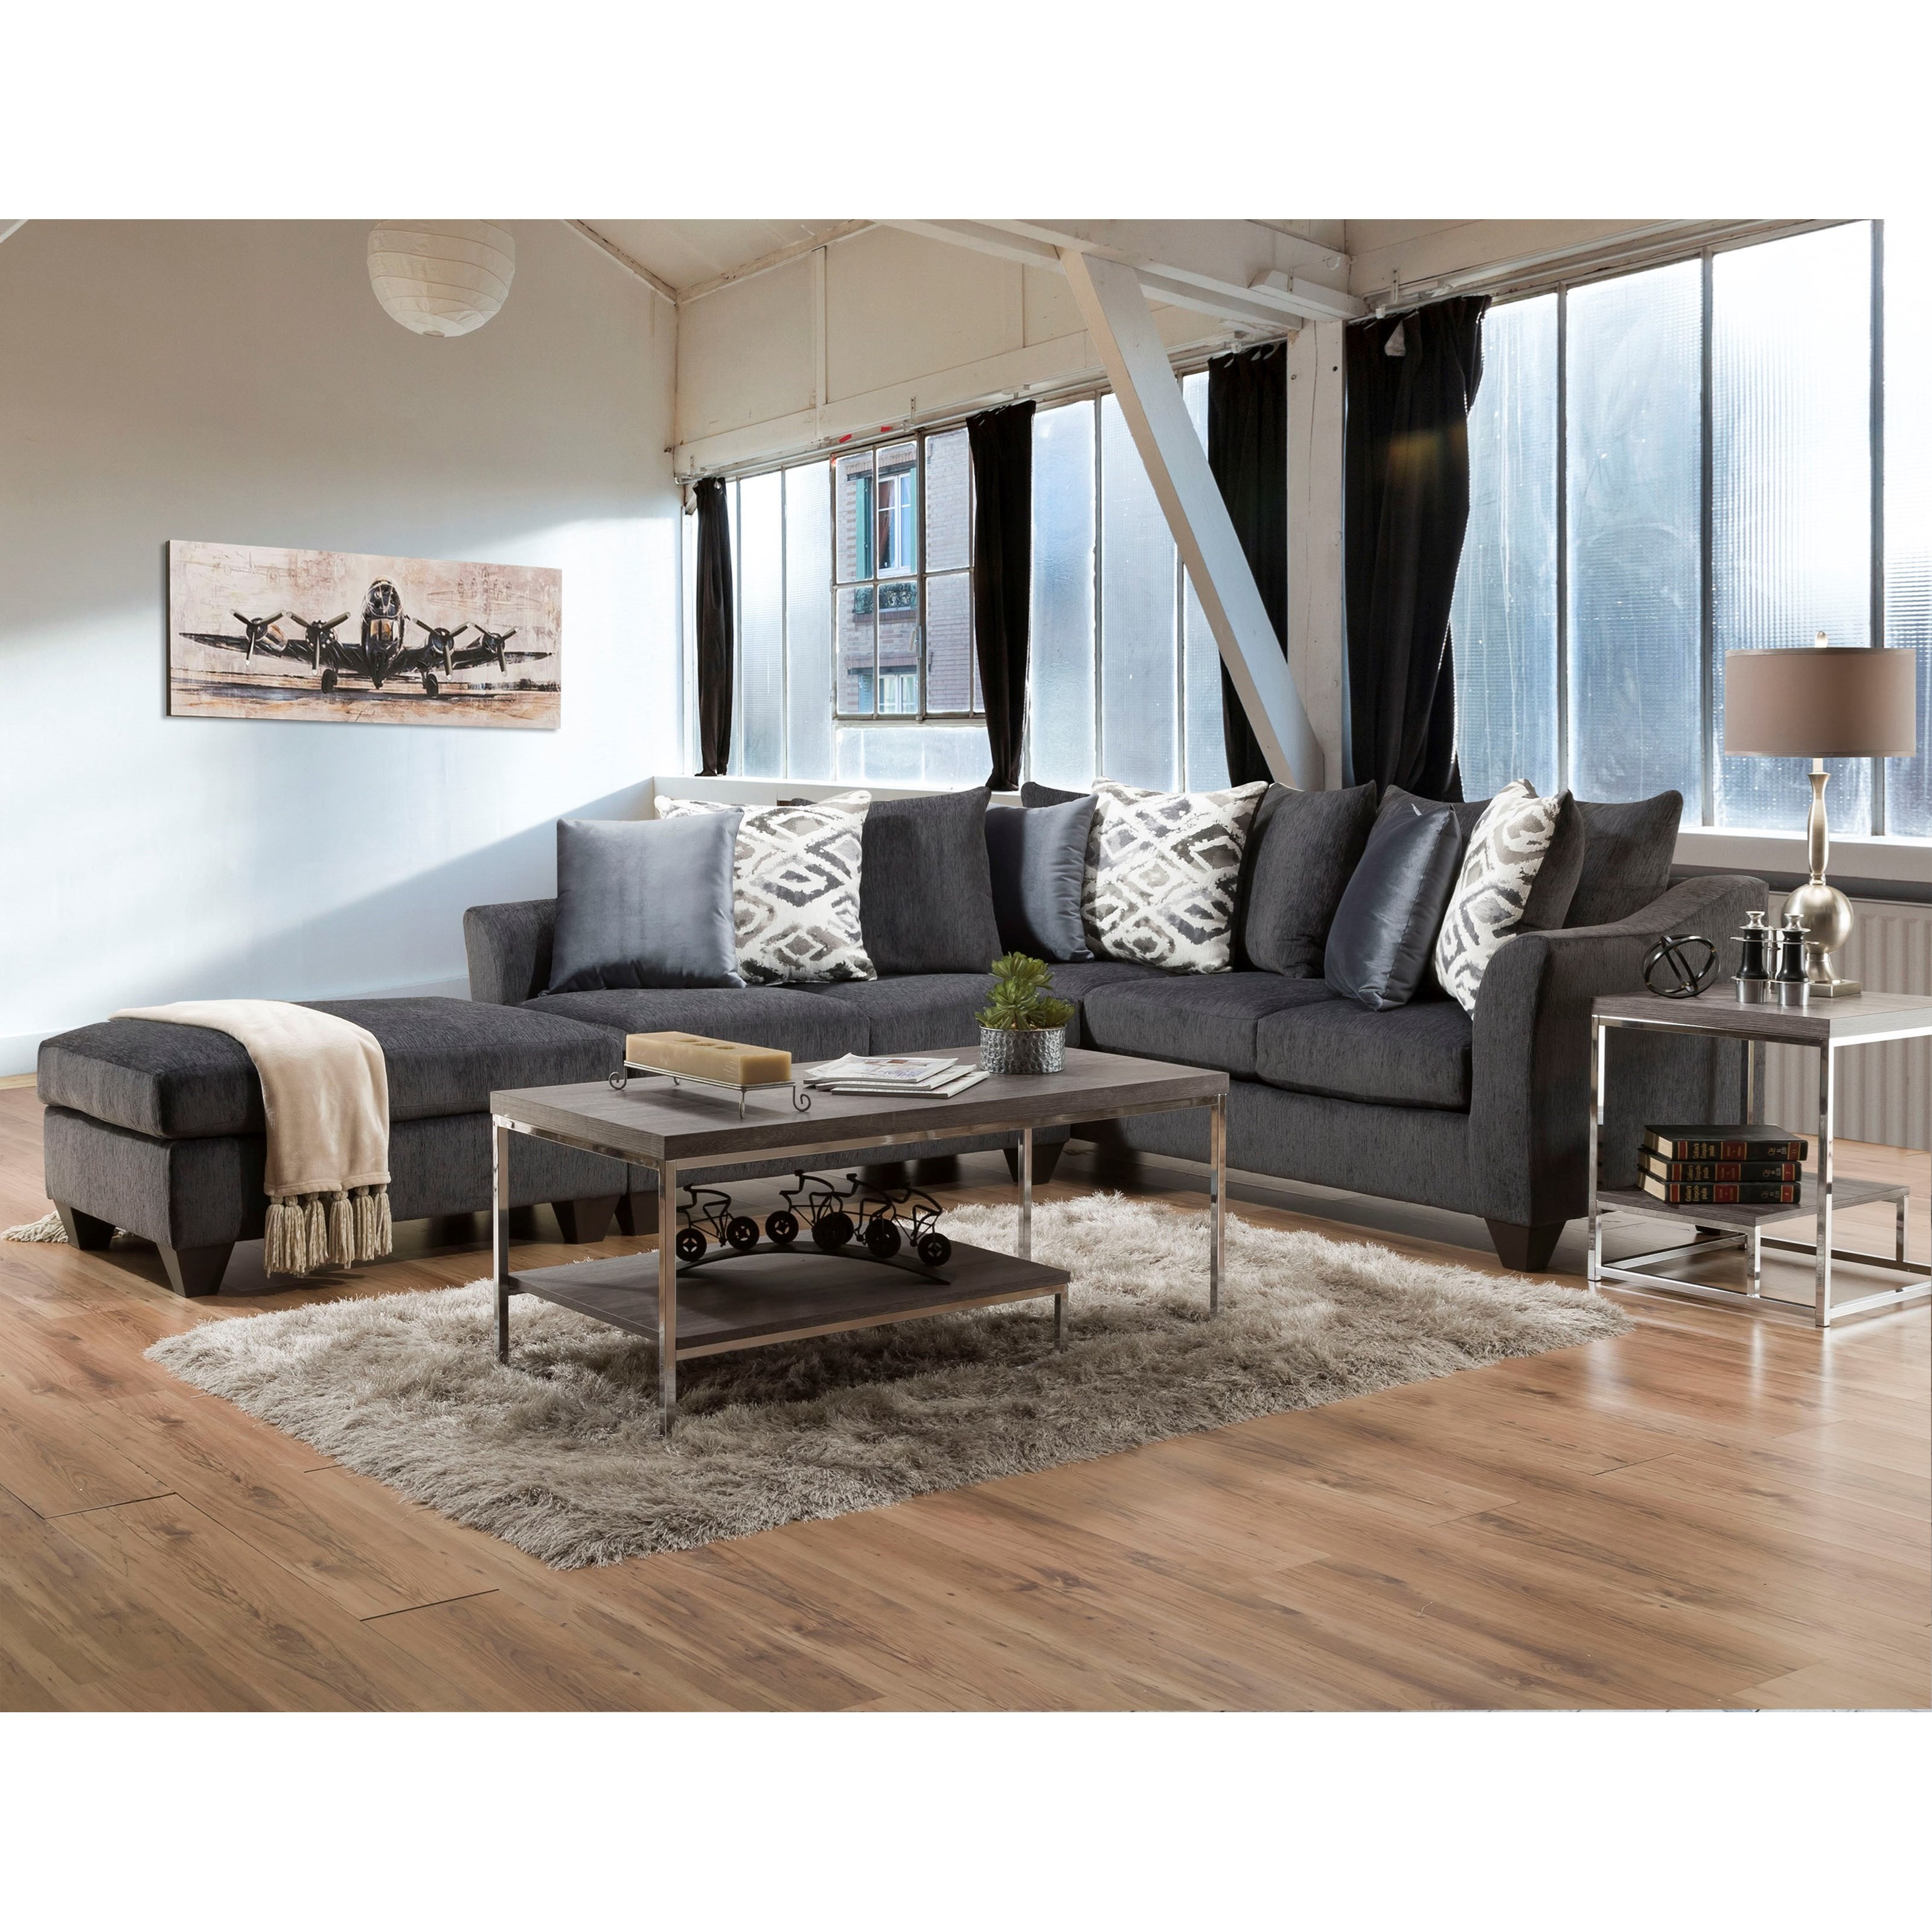 1370 Sectional by Peak Living at Prime Brothers Furniture